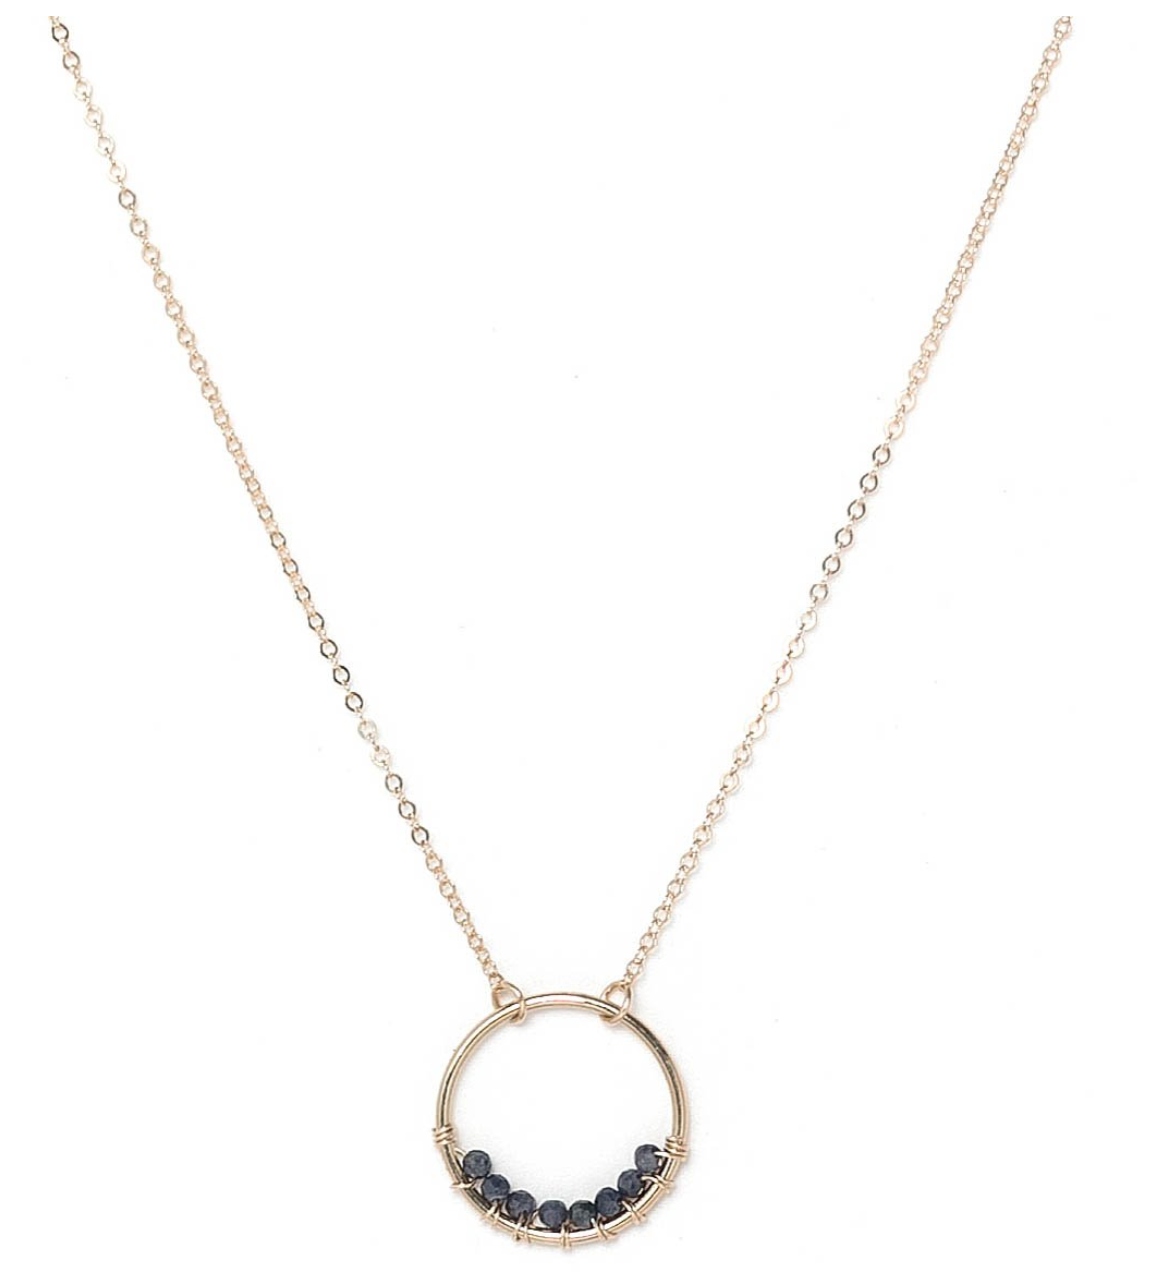 Curra Sapphire Necklace